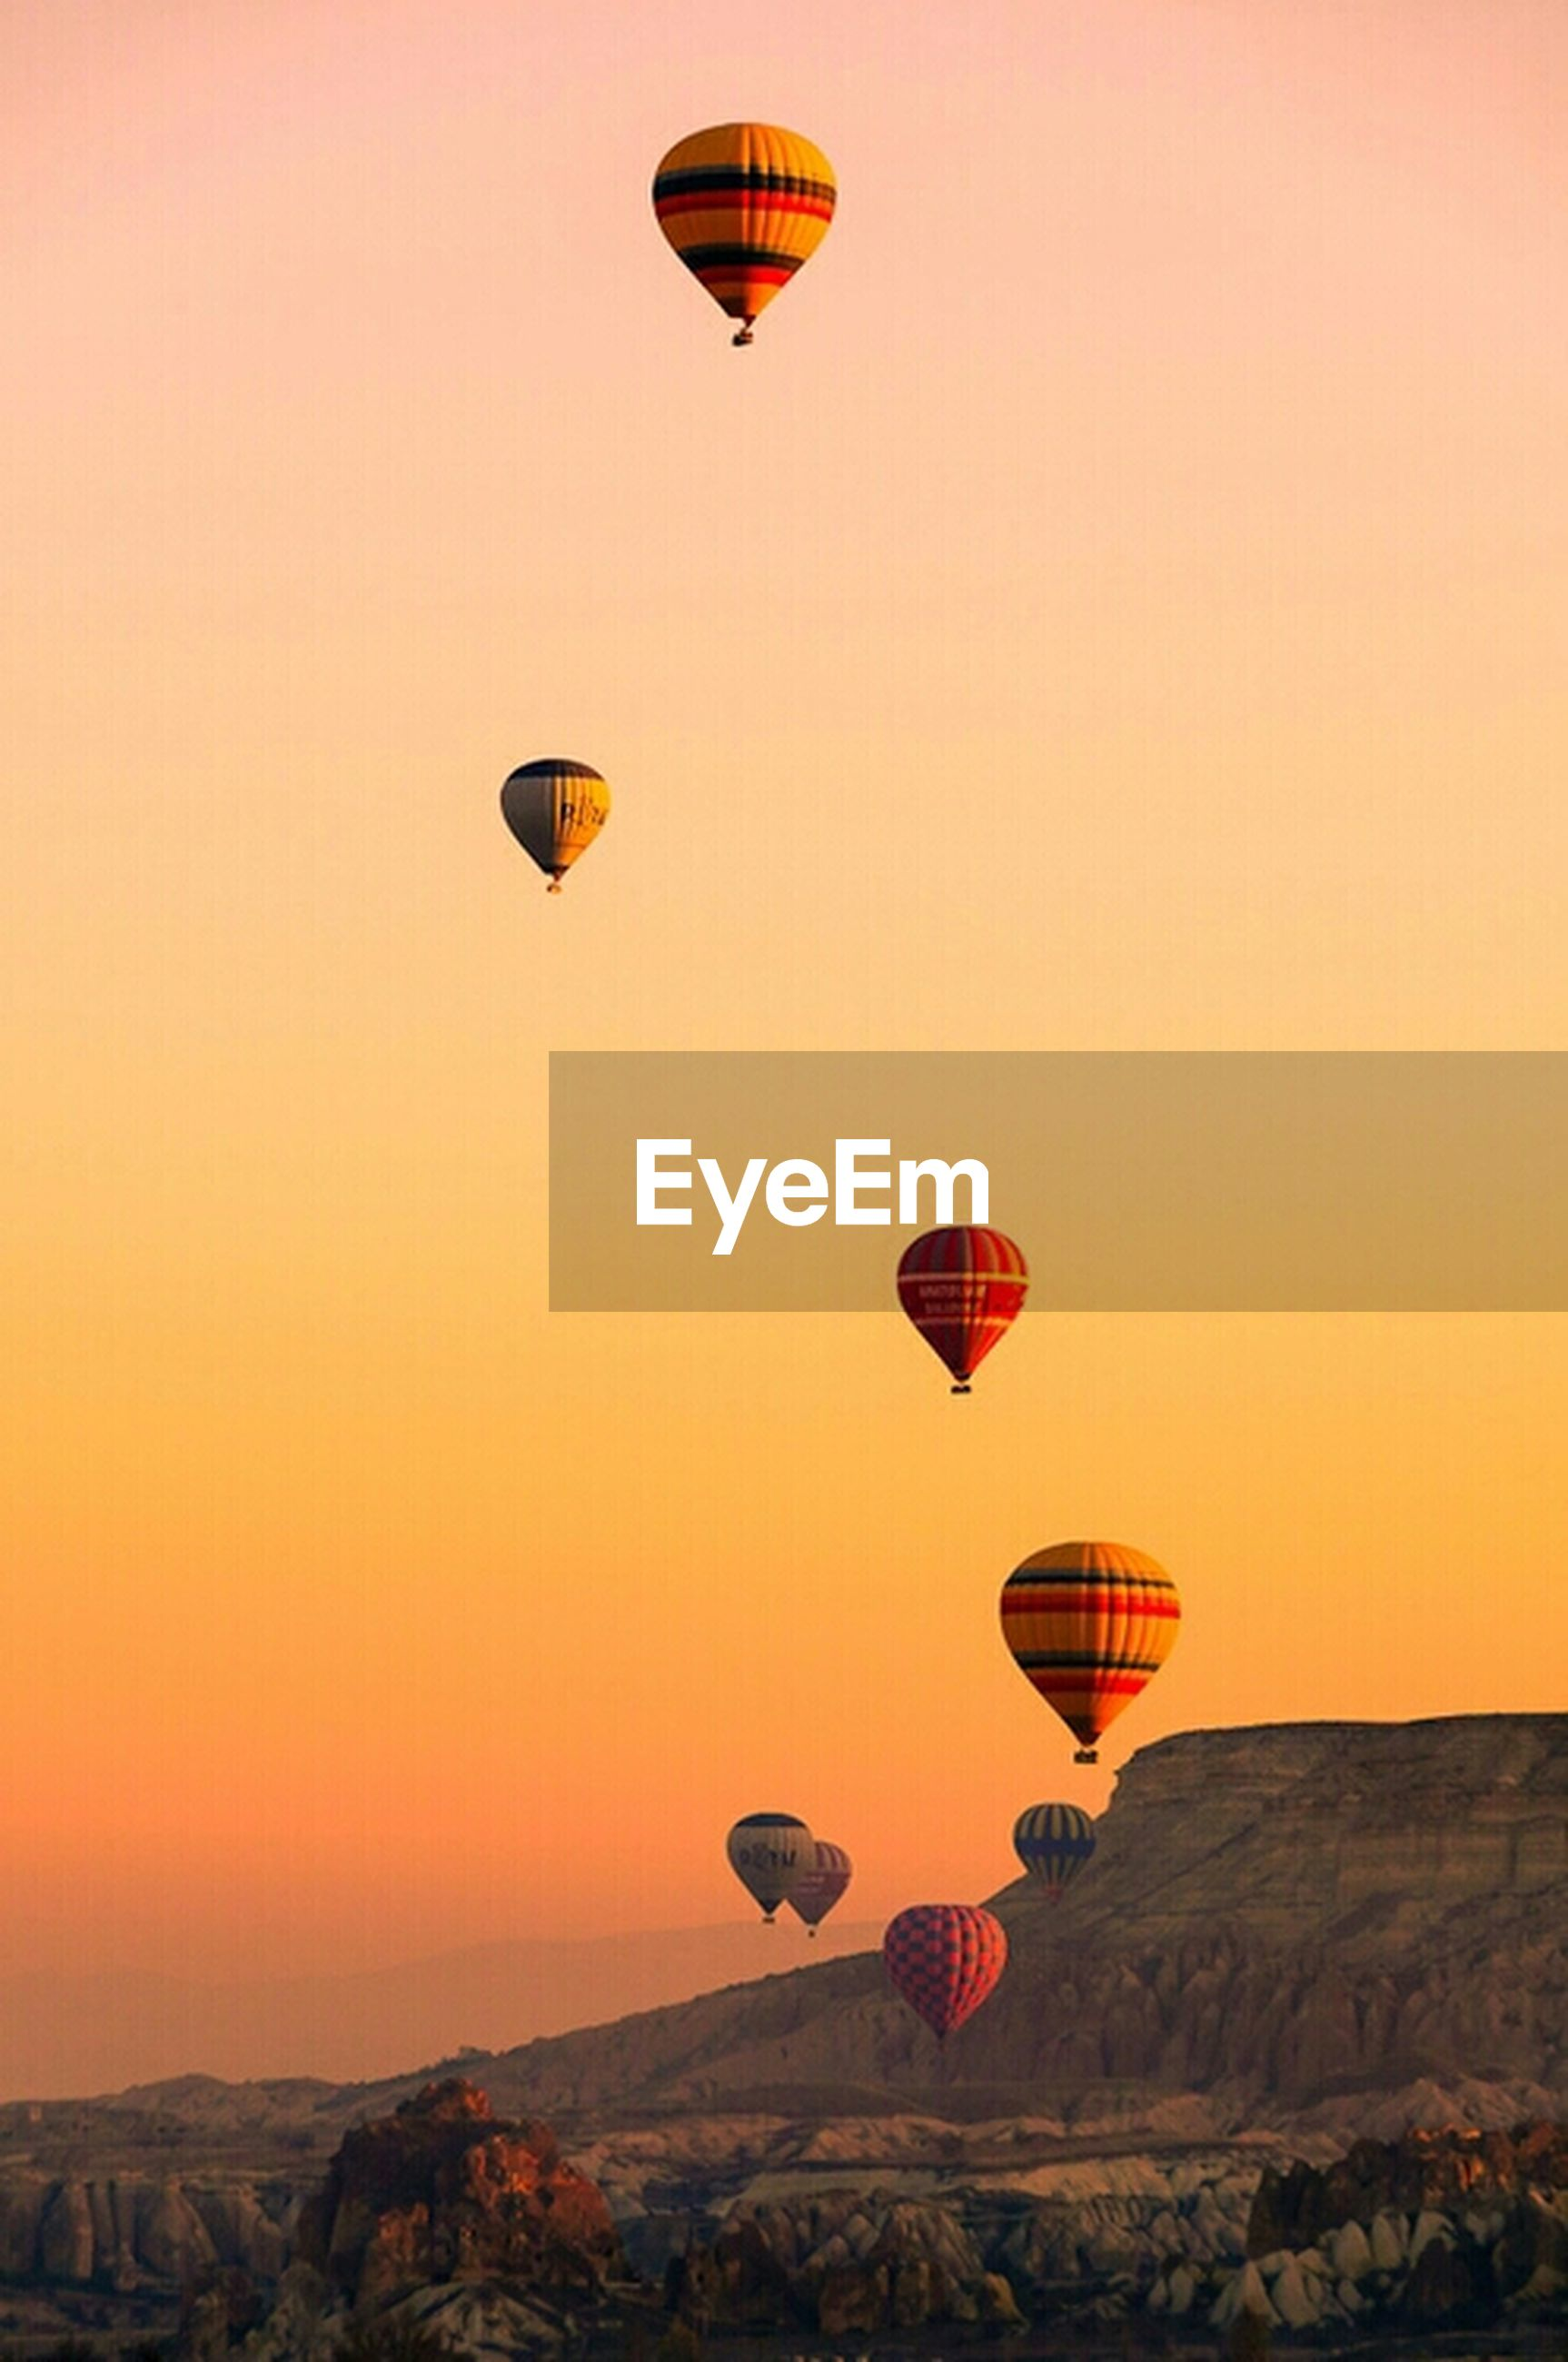 clear sky, sunset, copy space, orange color, hot air balloon, transportation, red, mid-air, low angle view, guidance, flying, parachute, yellow, adventure, scenics, lighting equipment, sky, outdoors, tranquility, communication